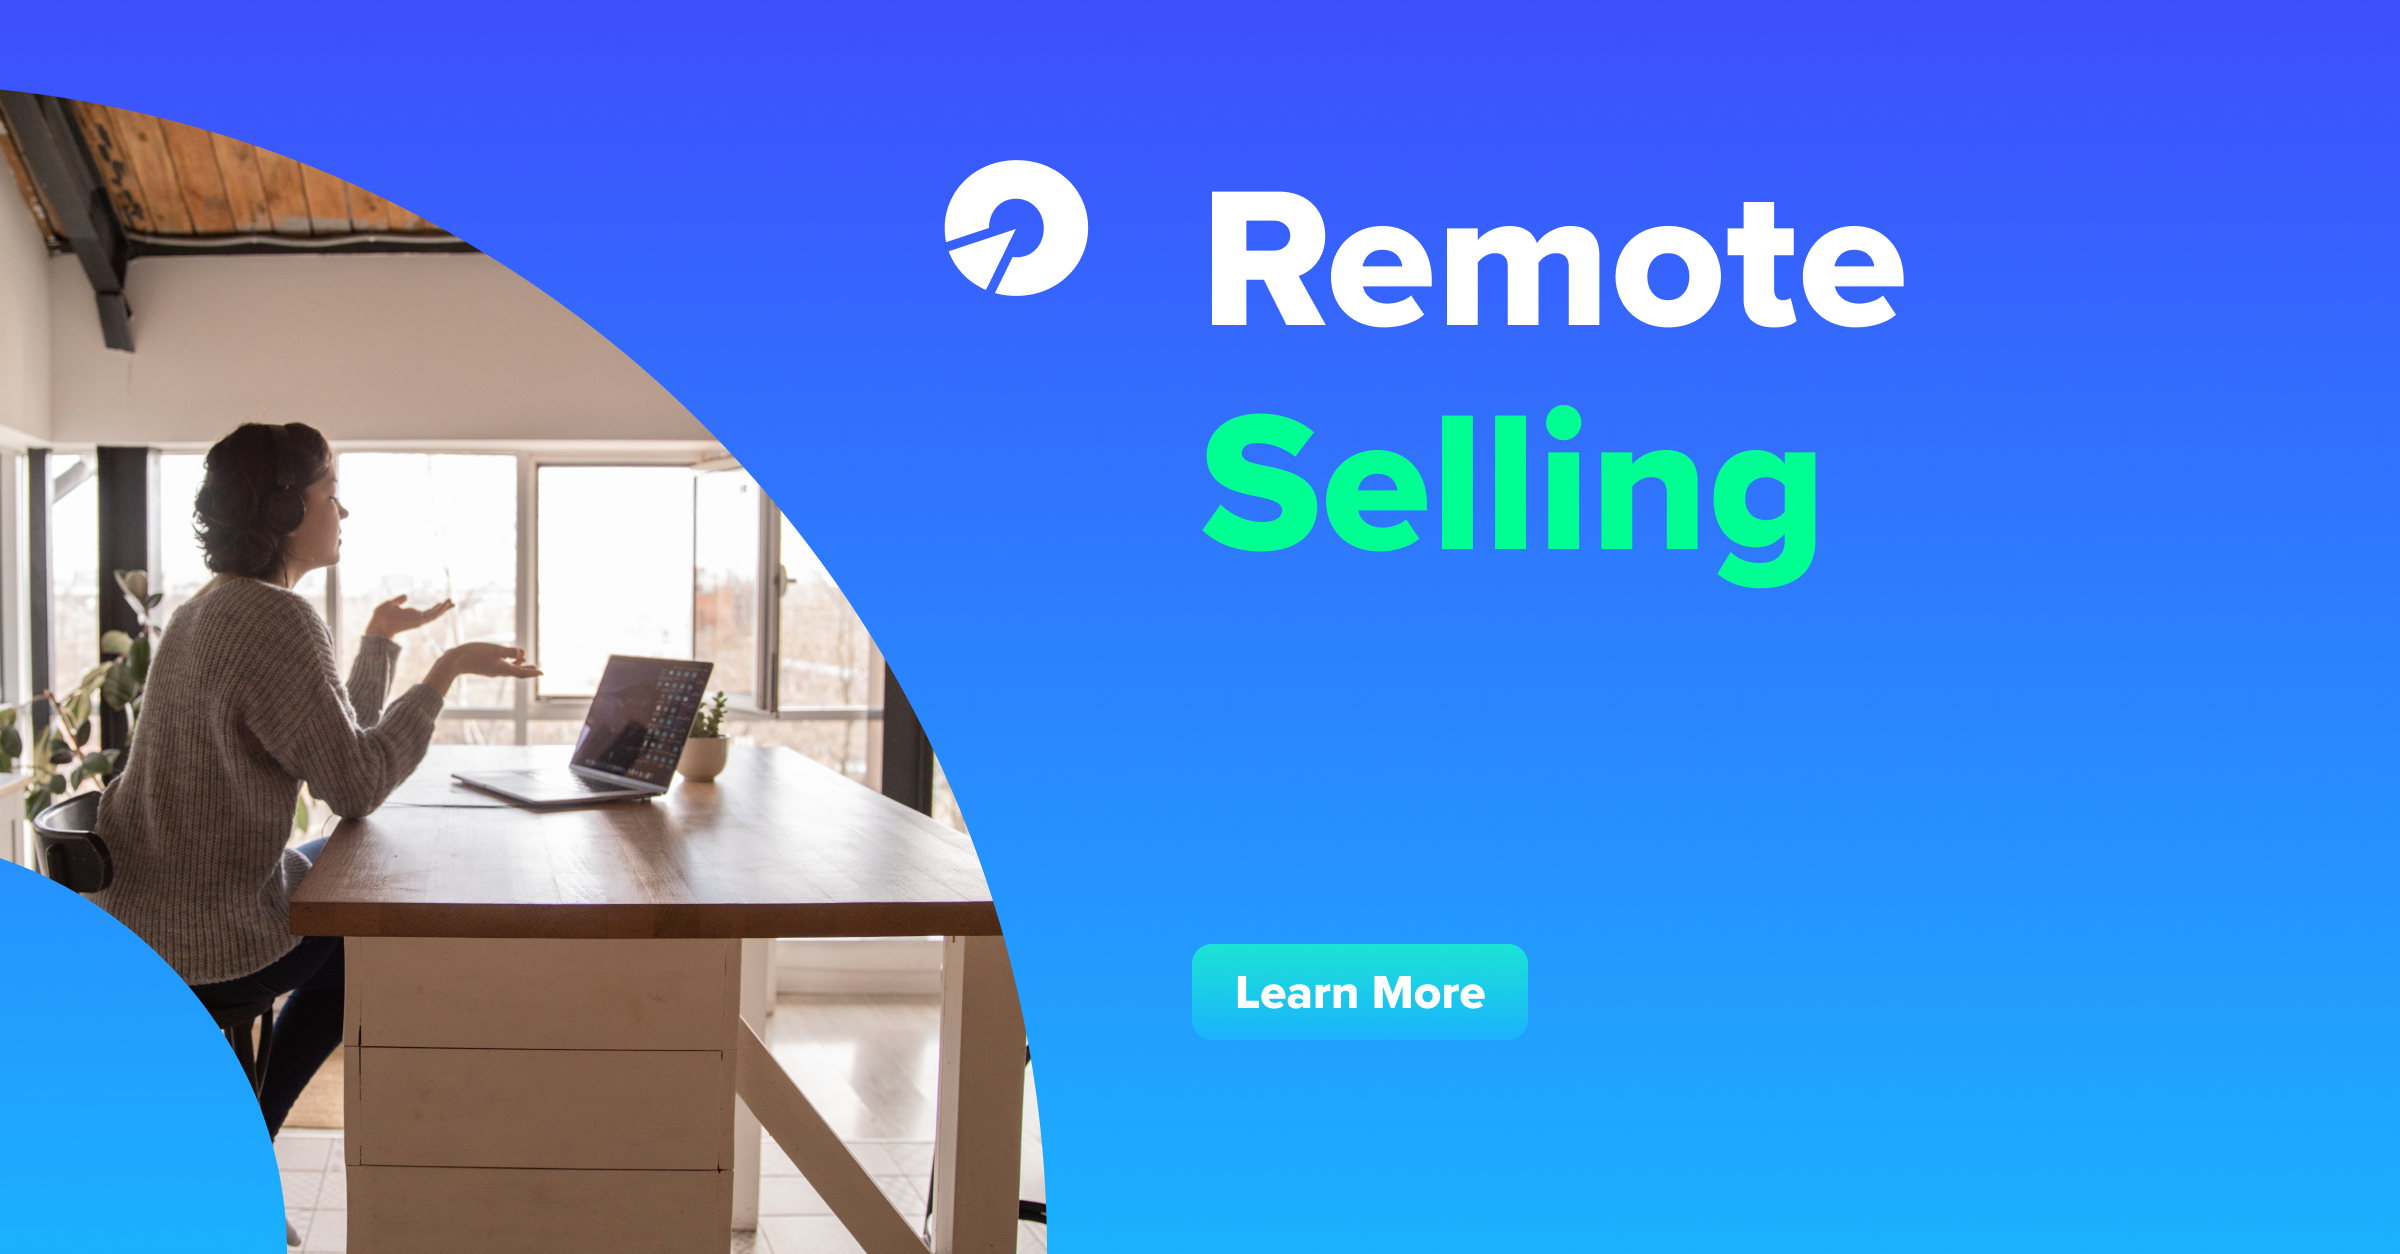 Remote Selling